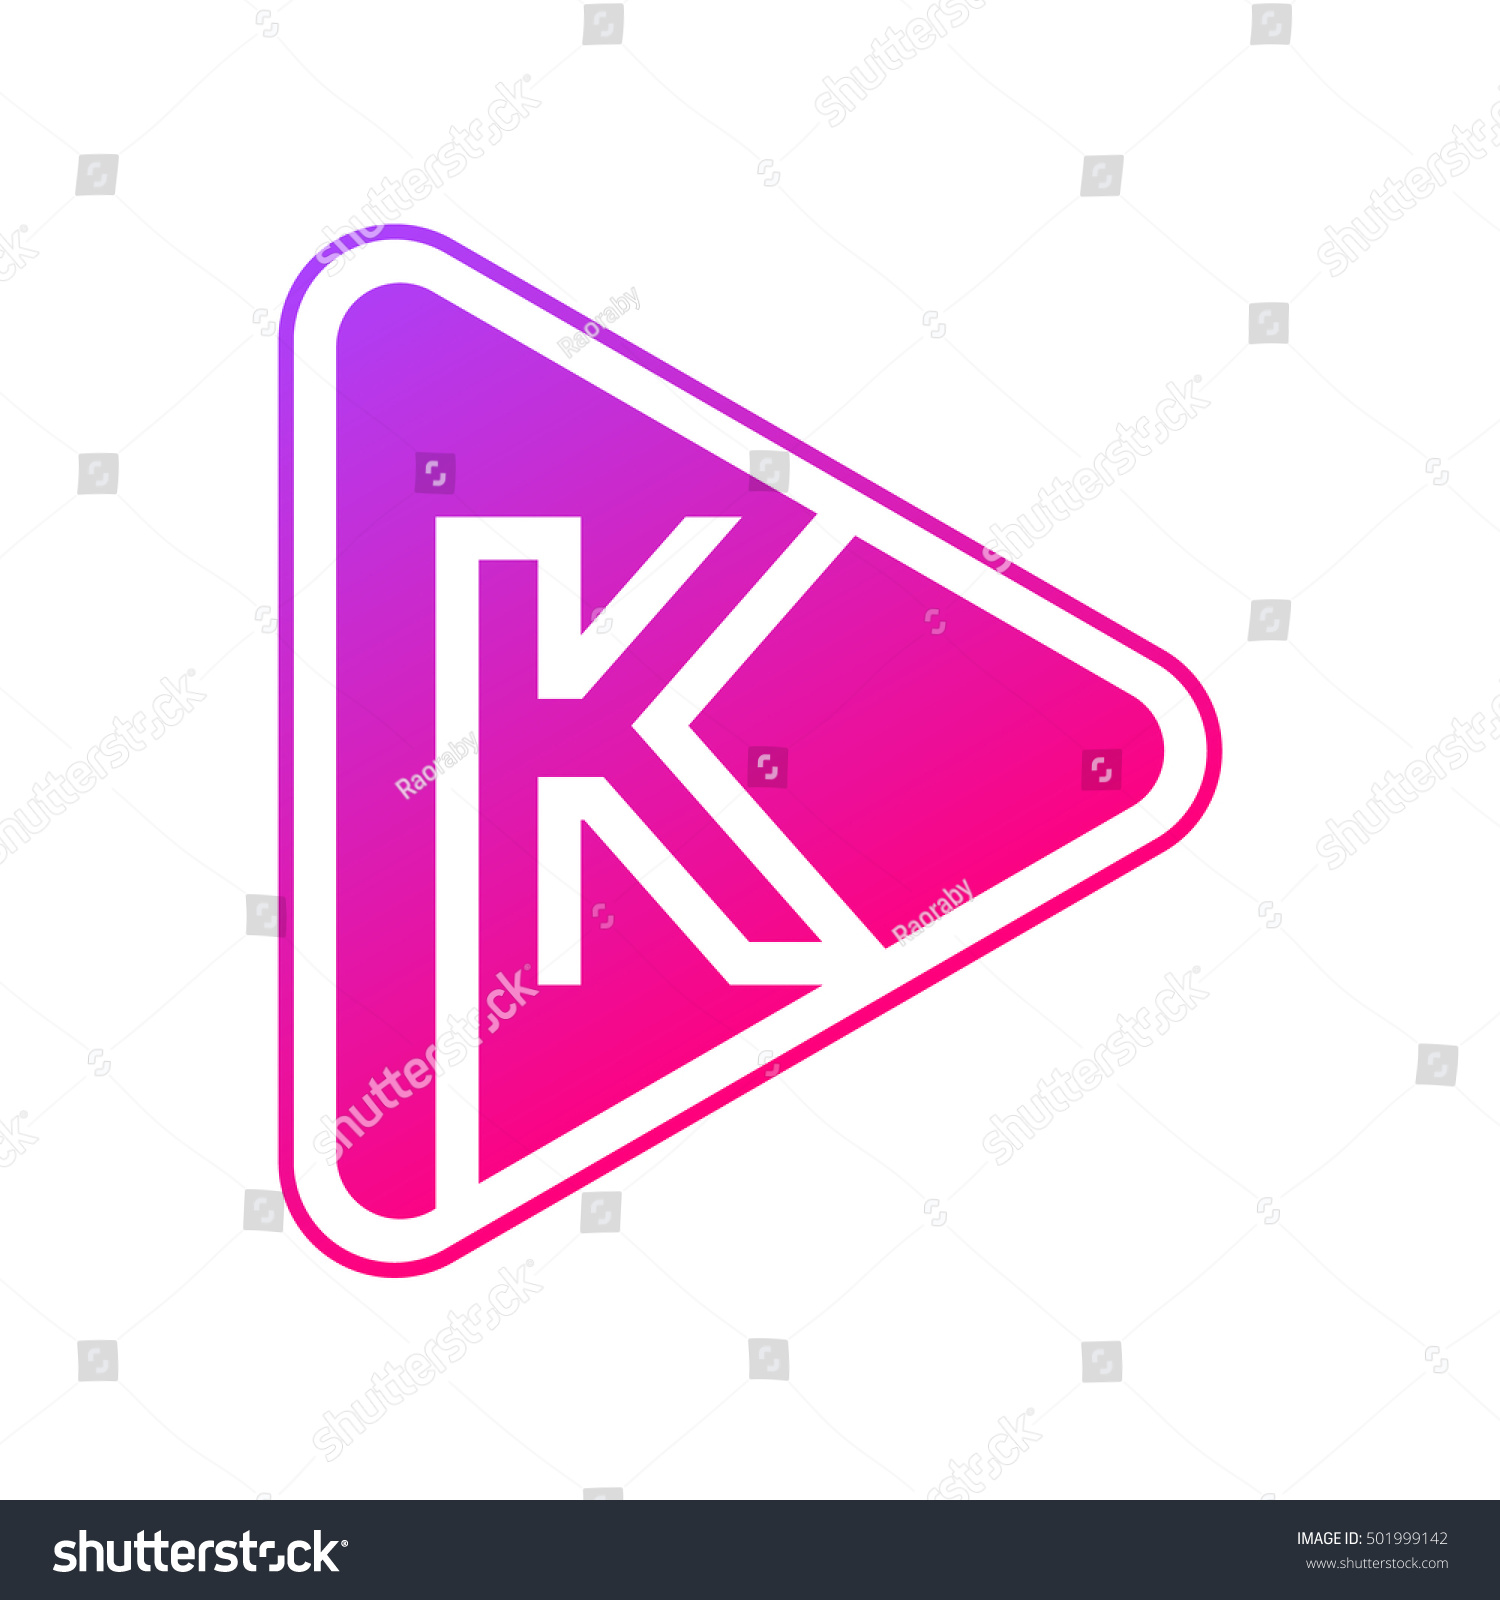 Letter K Rounded Triangle Shape Colorful Multimedia Stock Vector ...